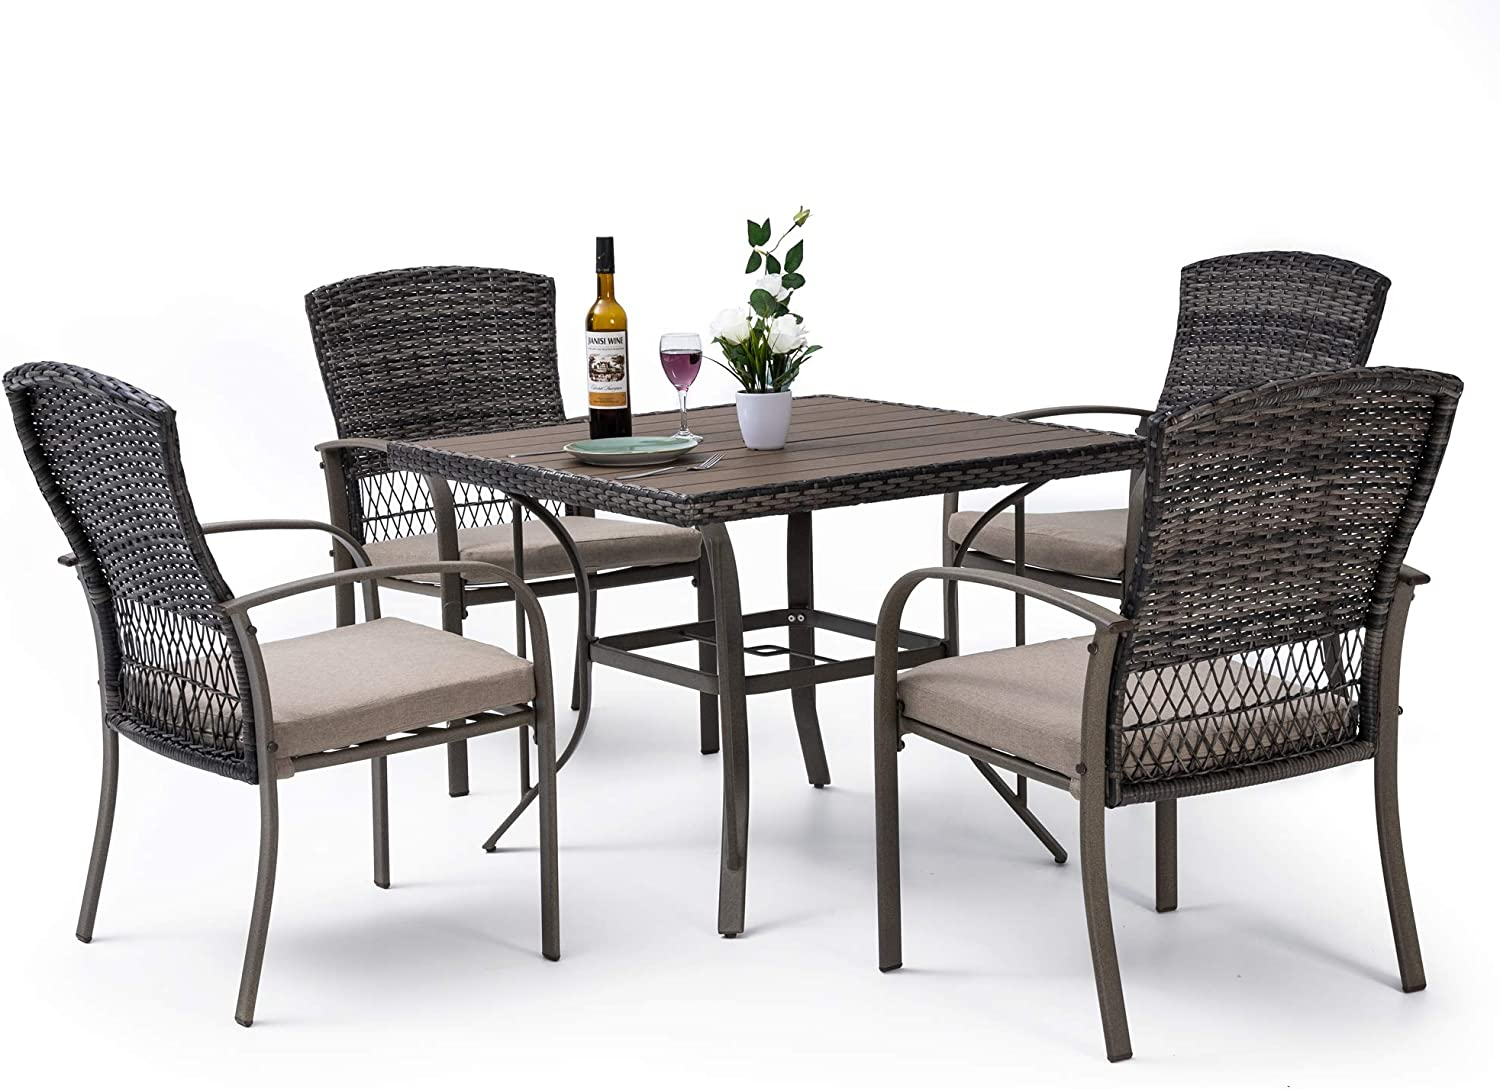 Pamapic 9 Piece Patio Dining Set, Outdoor Dining Table Set, Patio Wicker  Furniture Set with Square Plastic Wood Table Top and Washable Cushions for  ...